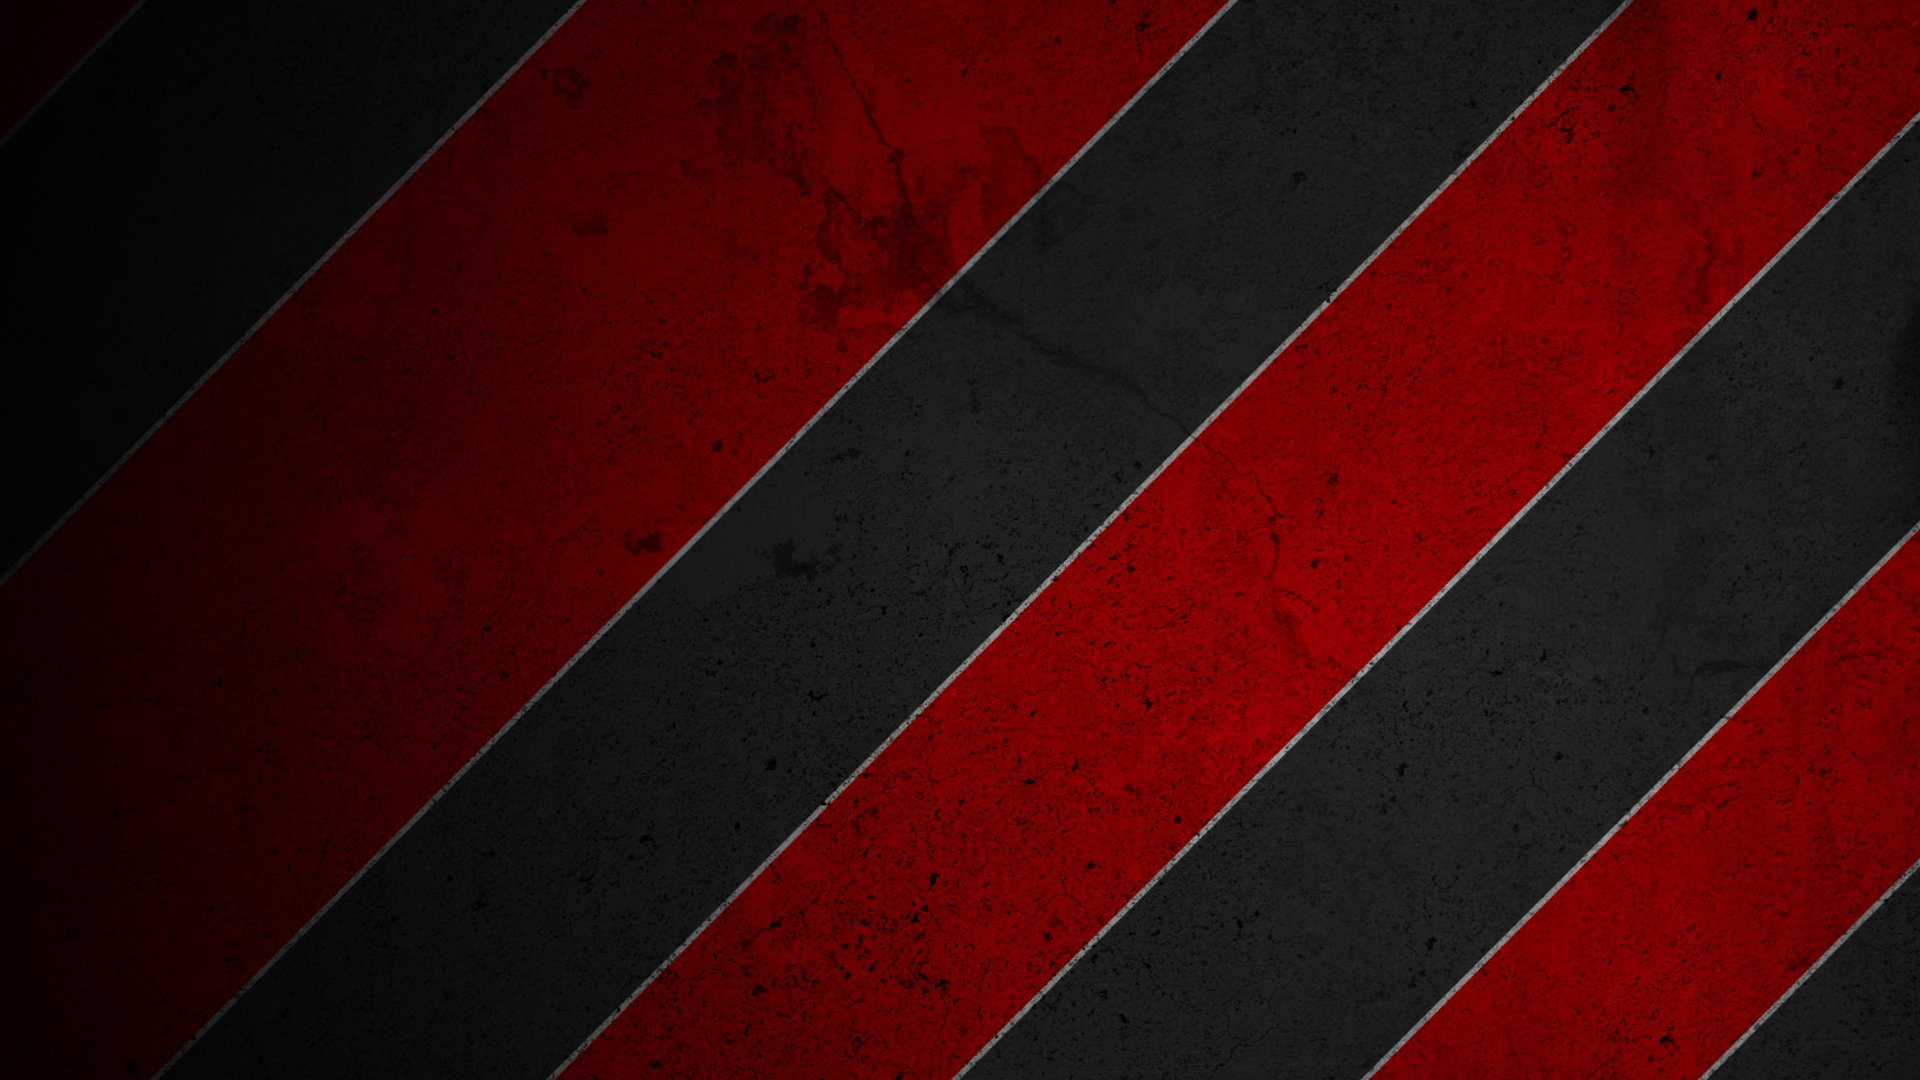 wallpaper wallpapers retro red lista grey 1920x1080